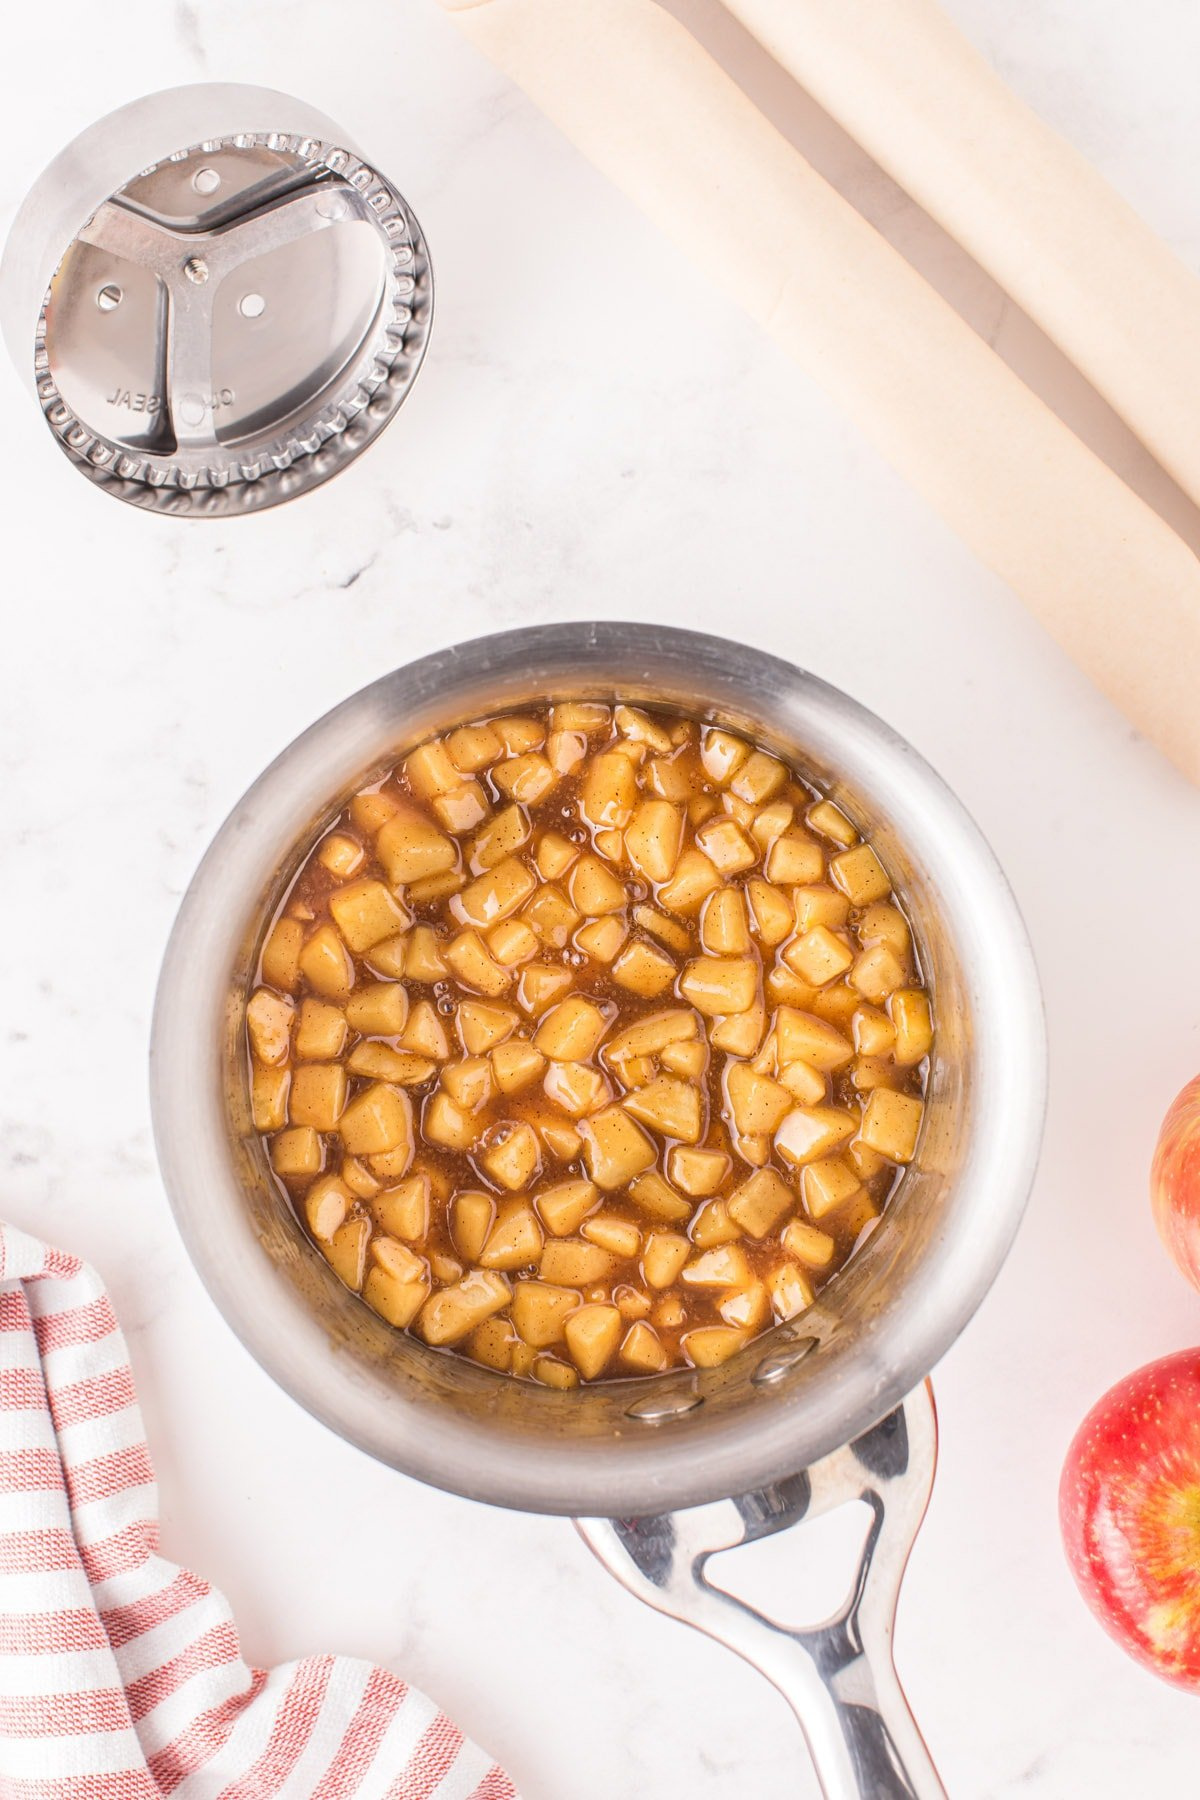 Heat and cook apples, caramel syrup, brown sugar, butter, and allspice in a skillet